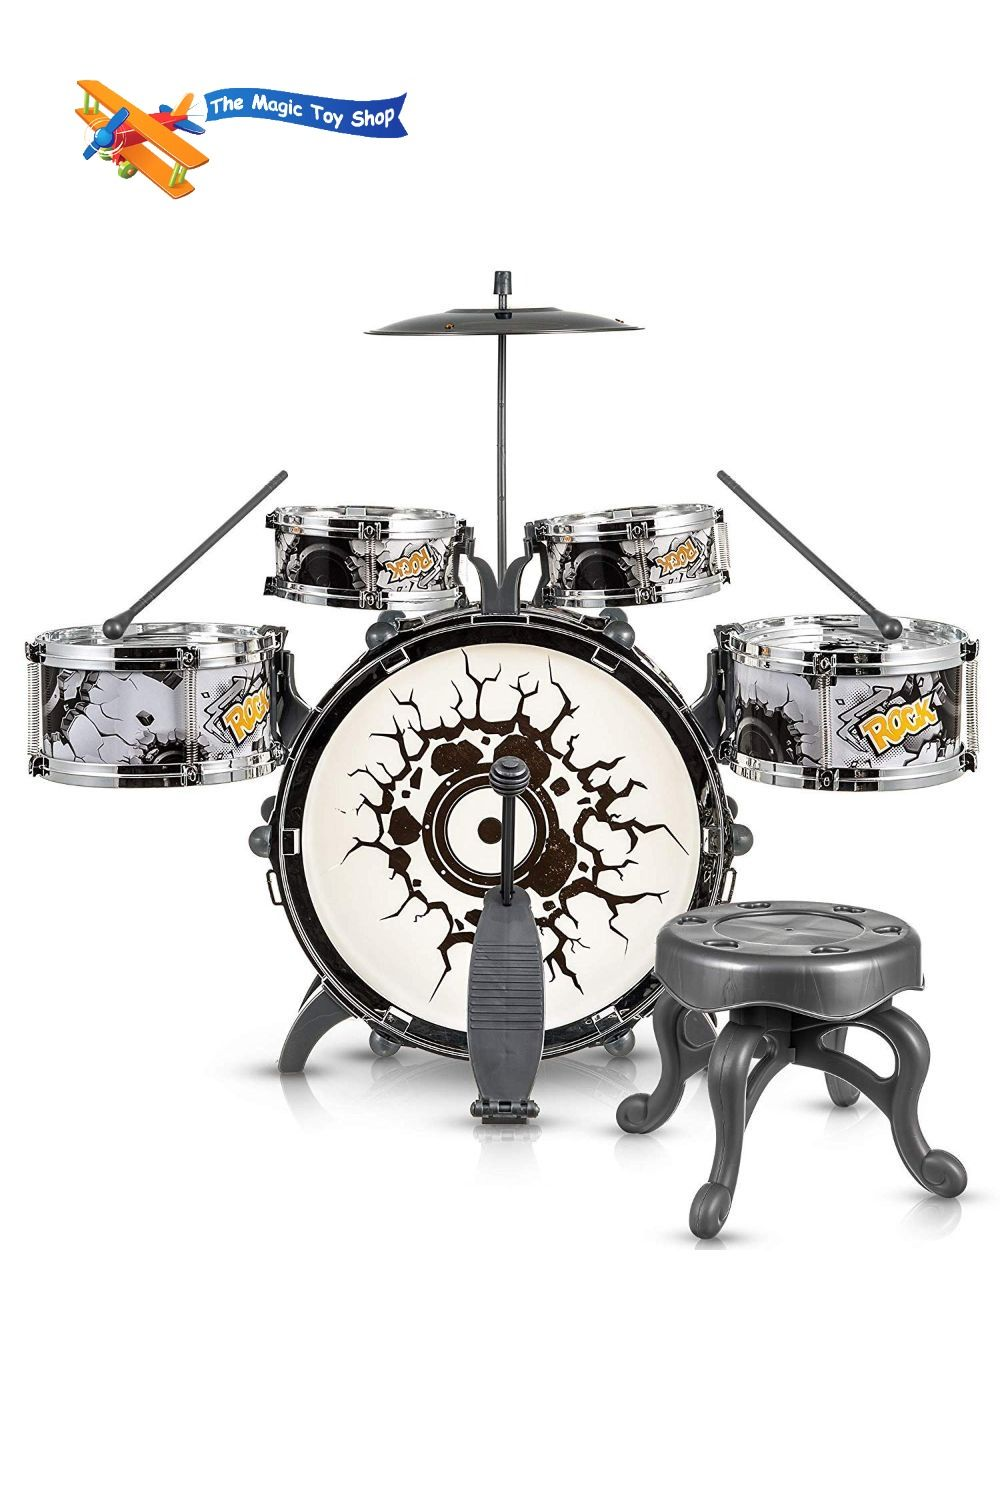 Kids Black and White Drum Kit Play Set Drums Musical Toy